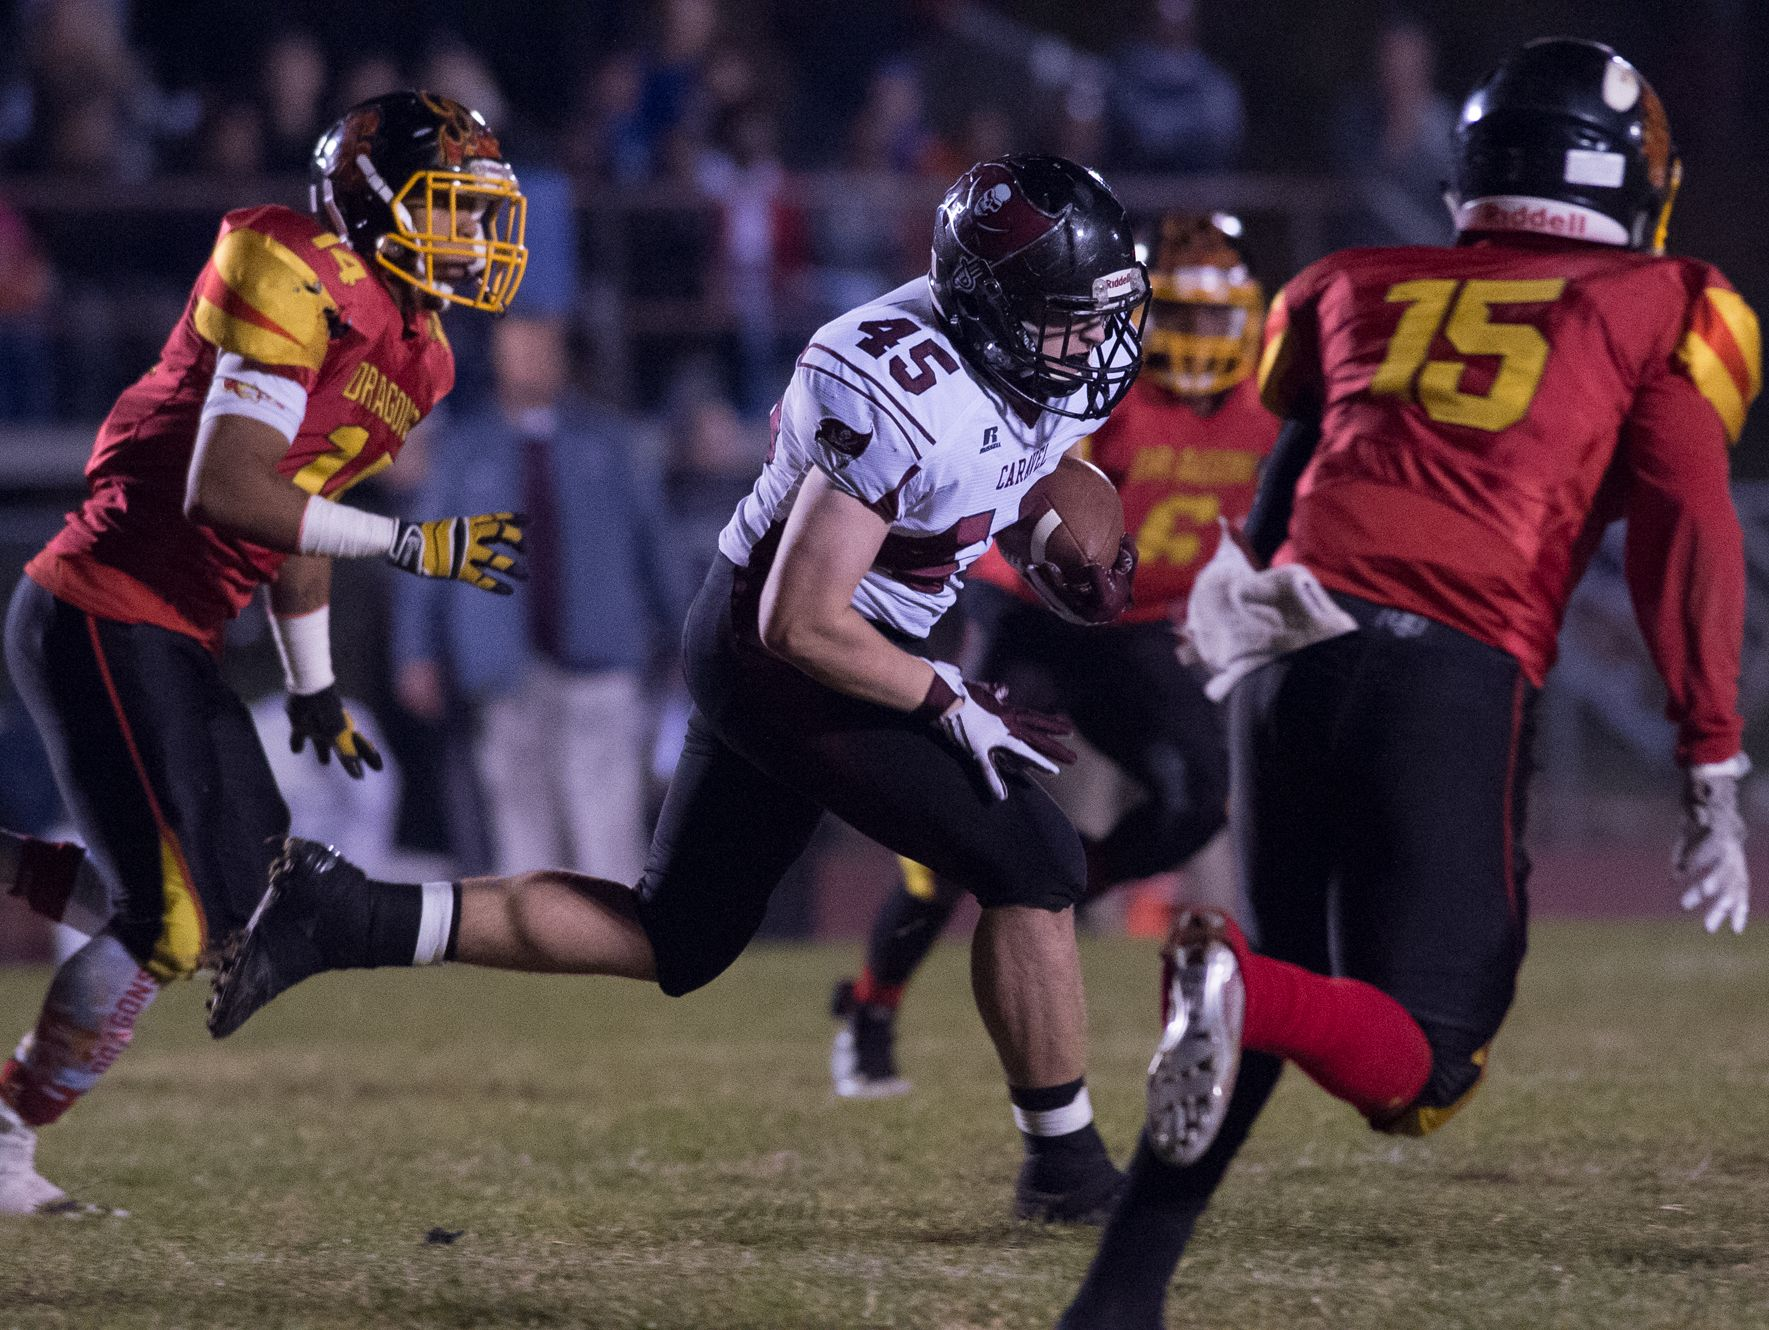 Caravel's Jacob Laznik (45) runs the ball through Glasgow's defense in the opening round of the DIAA Division II playoffs at Glasgow High School.